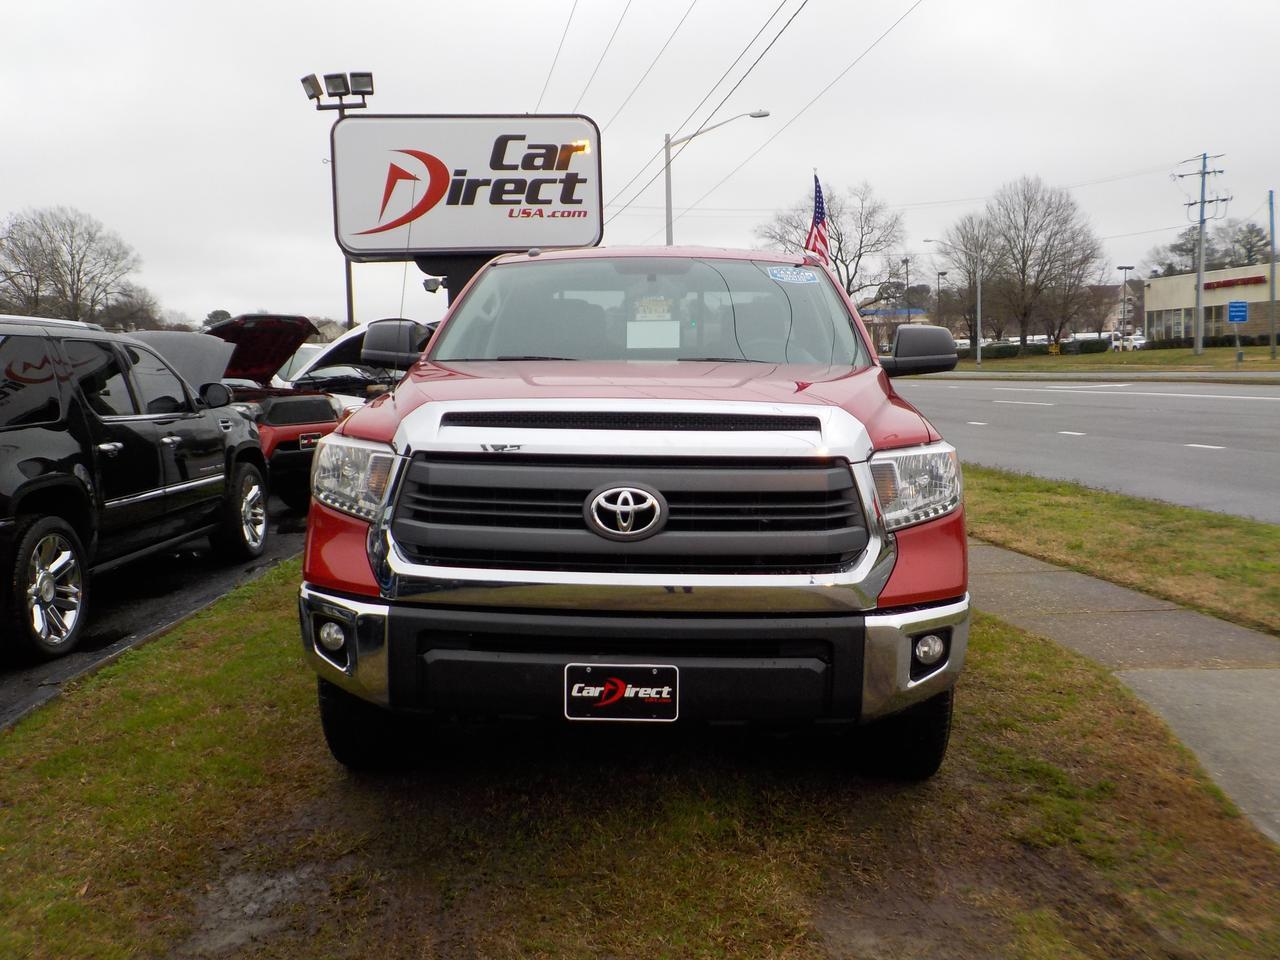 2014 TOYOTA TUNDRA SR5 DOUBLE CAB 4X4, WARRANTY, RUNNING BOARDS, BED LINER, BLUETOOTH, BACKUP CAMERA, TOW PACKAGE! Virginia Beach VA